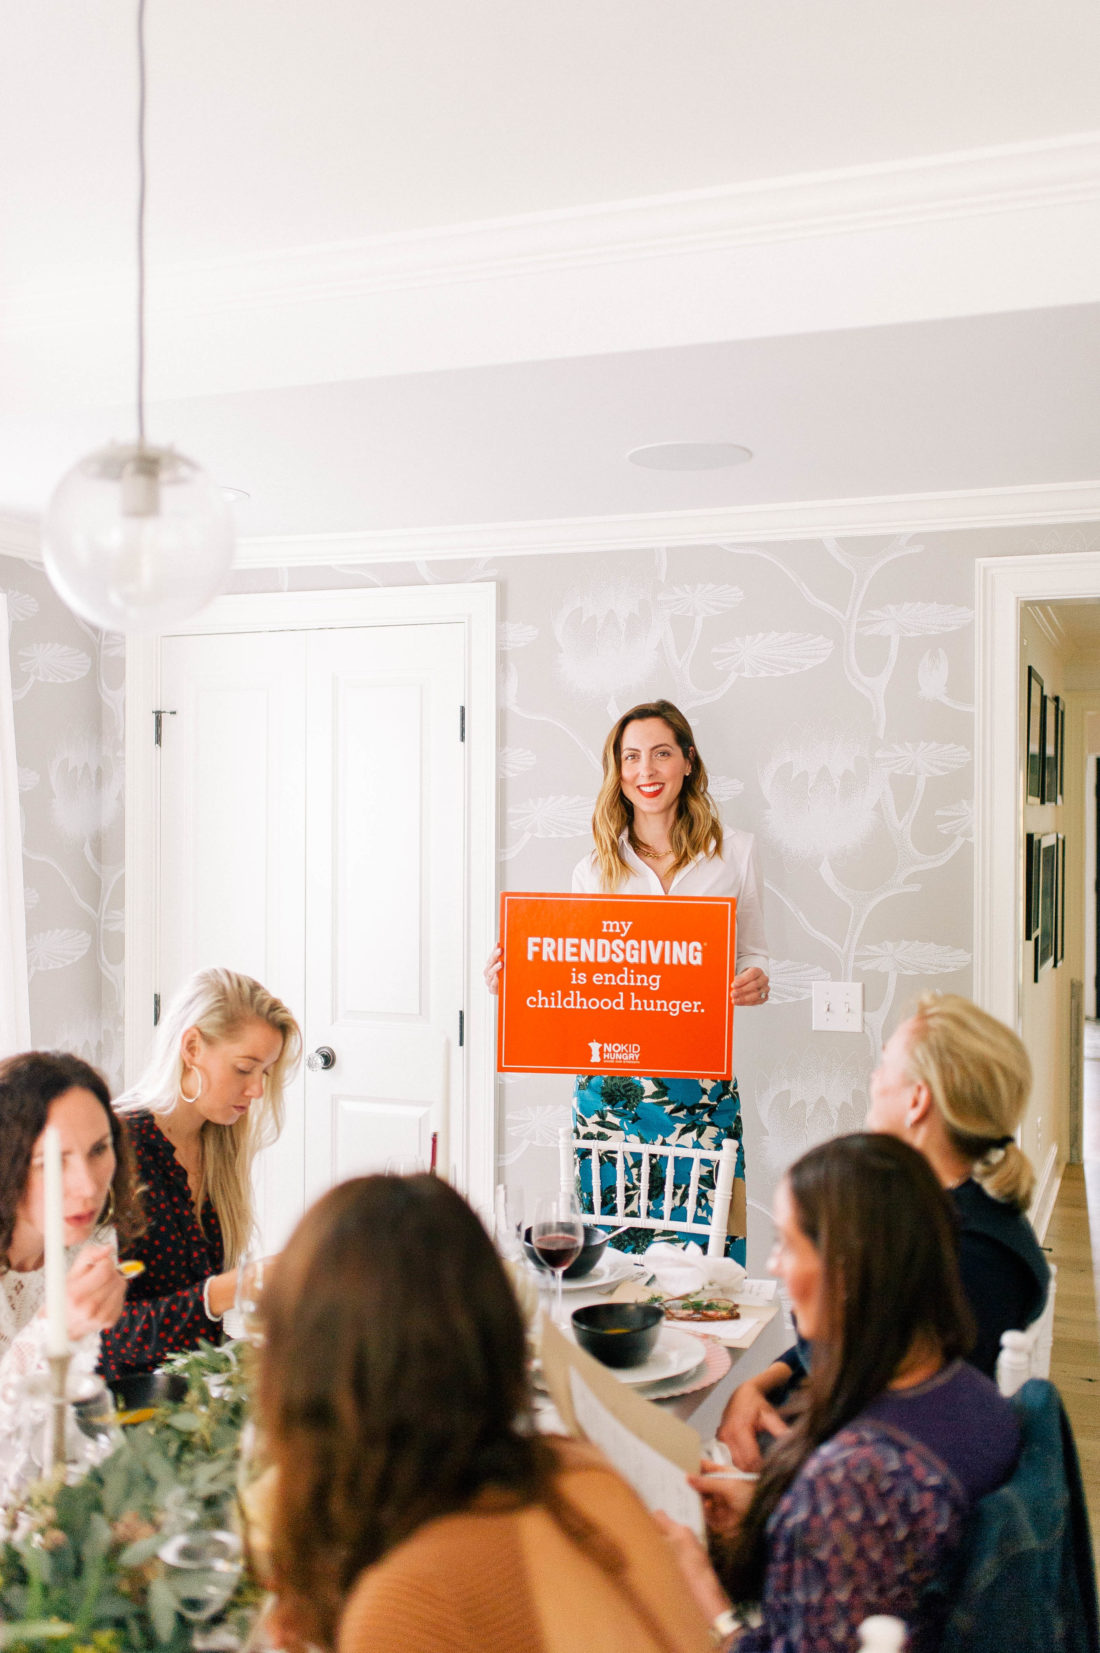 Eva Amurri Martino speaks about No Kid Hungry at her Friendsgiving in Connecticut